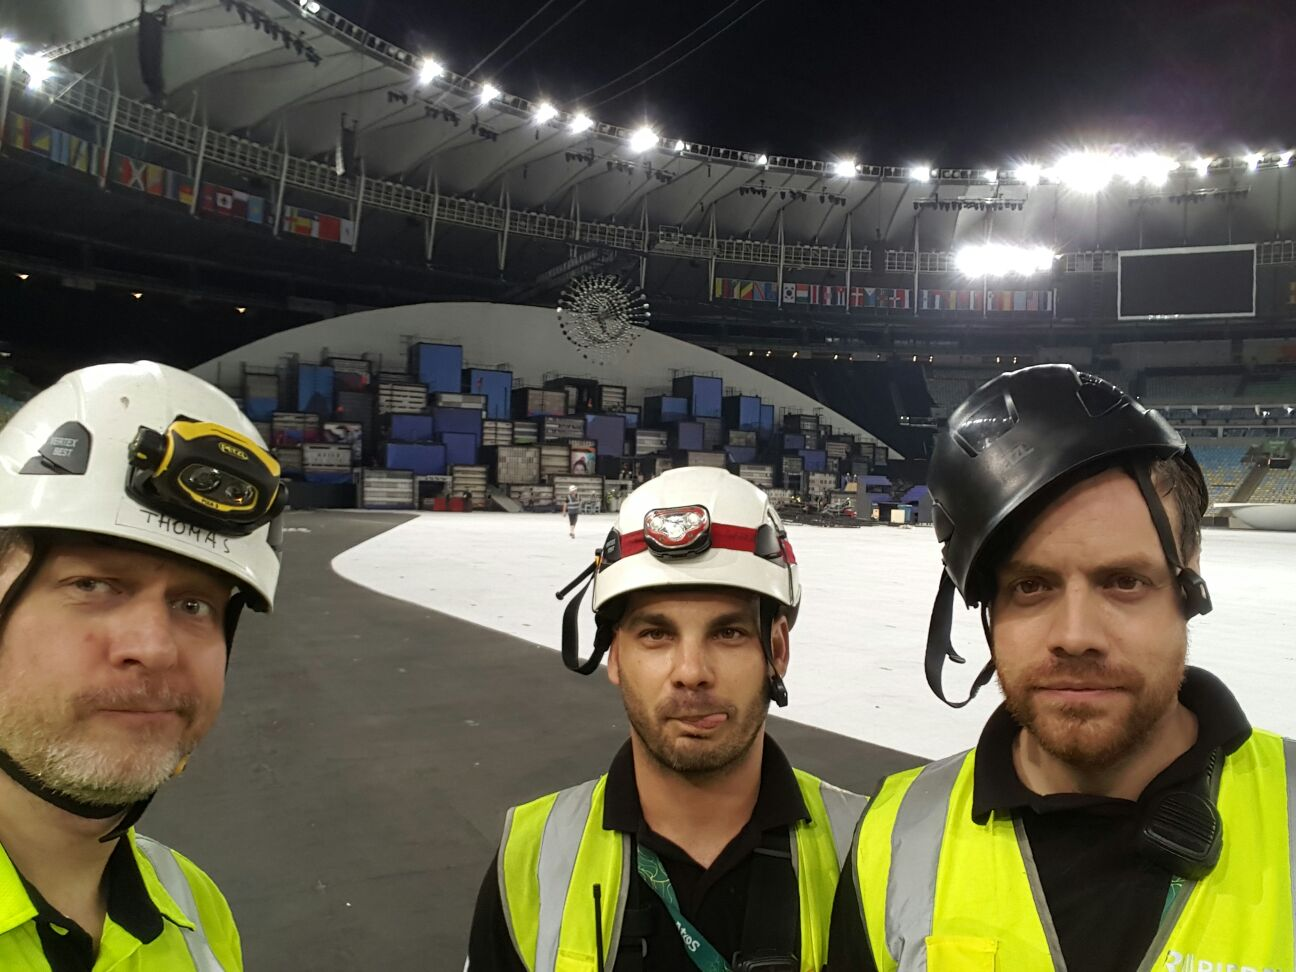 Thomas, Paolo, and Philipp stuck at stadium after show for strike....Aren't they happy?  Strike of the staging in the venue begins immediately so all field level comms needed to be taken down right away.